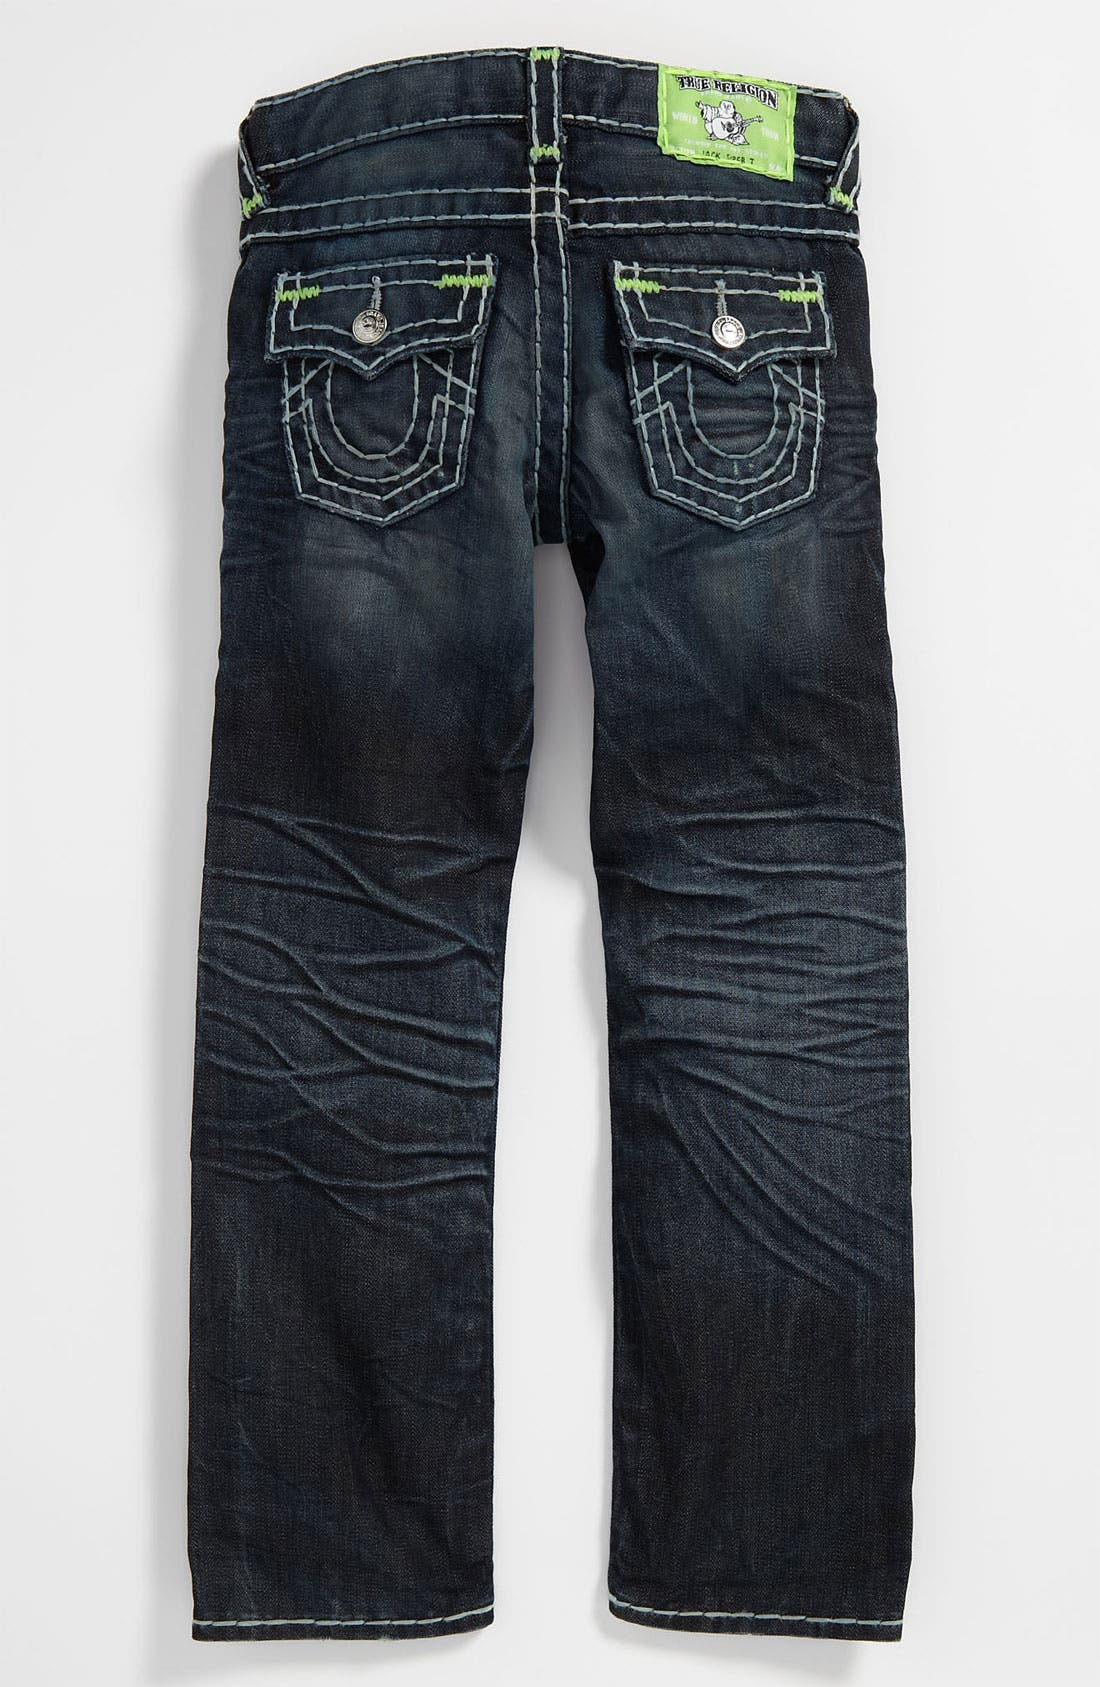 Alternate Image 1 Selected - True Religion Brand Jeans 'Jack Super T' Jeans (Big Boys)